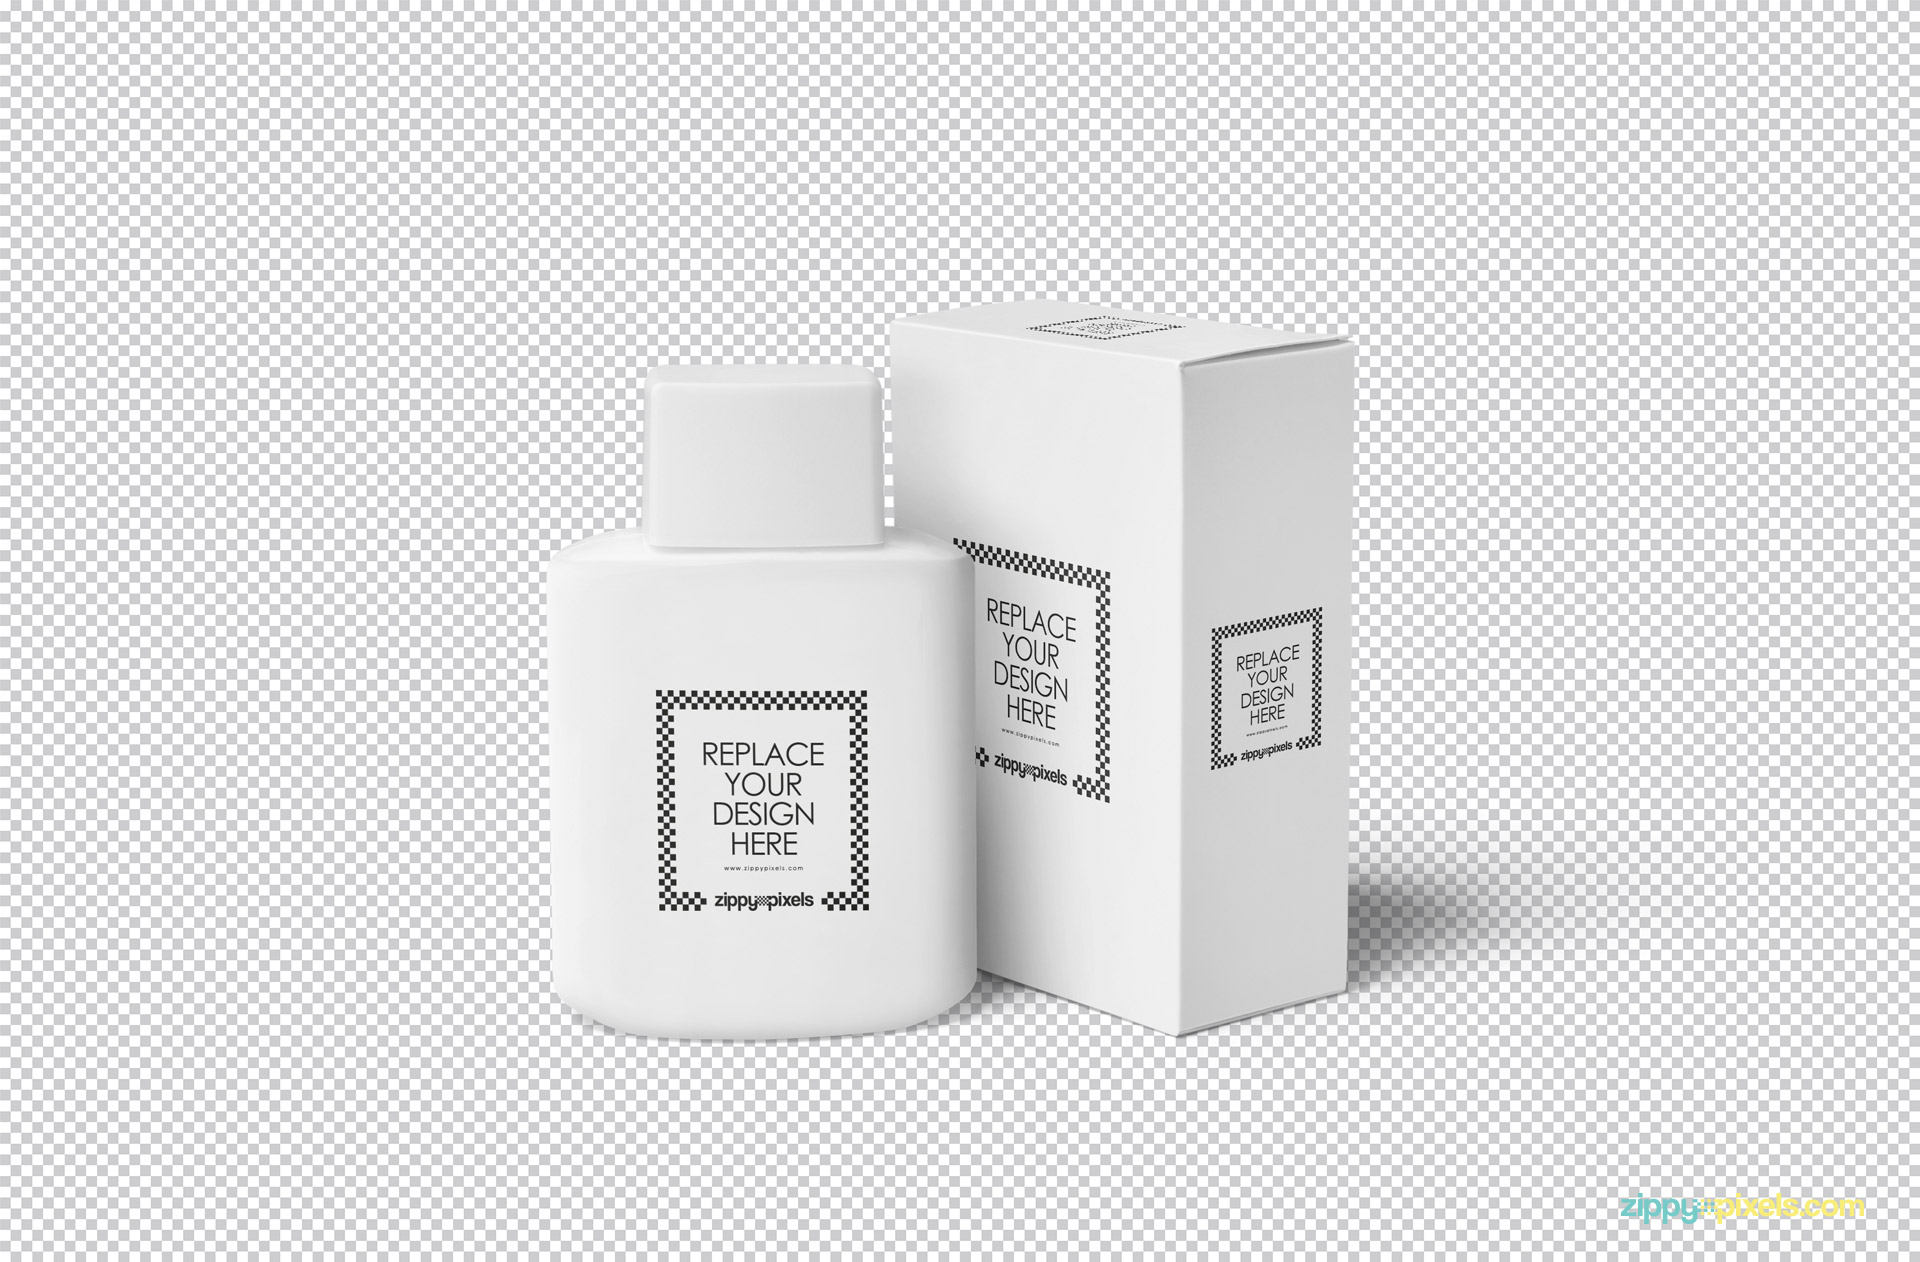 Use the smart object for the placement of your designs in this packaging mockup.